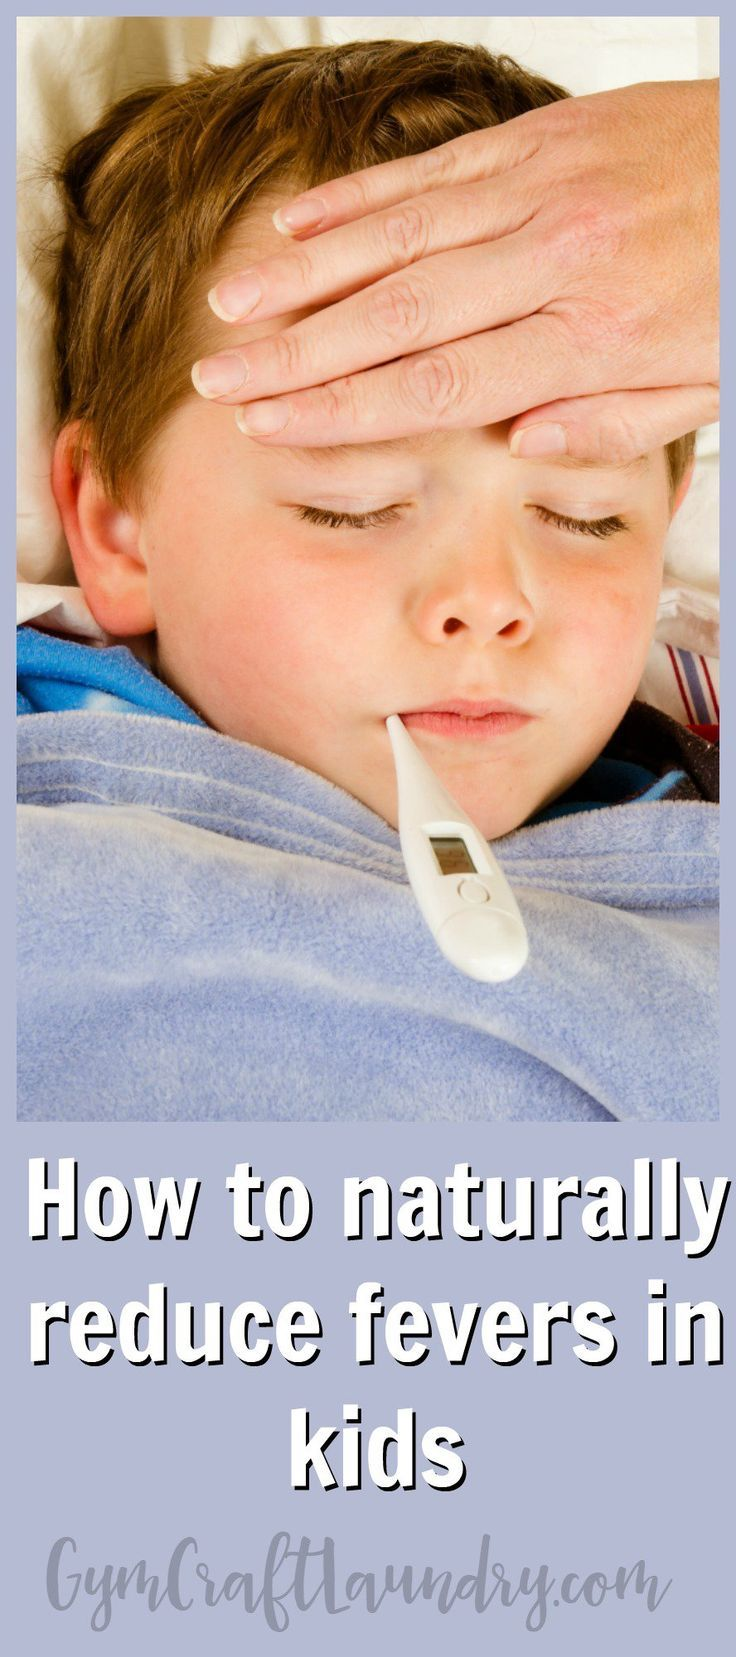 How to naturally reduce fevers in kids. Also, who my family calls for immediate help online when we need a doctor. Sick kid hacks from http://Gymcraftlaundry.com